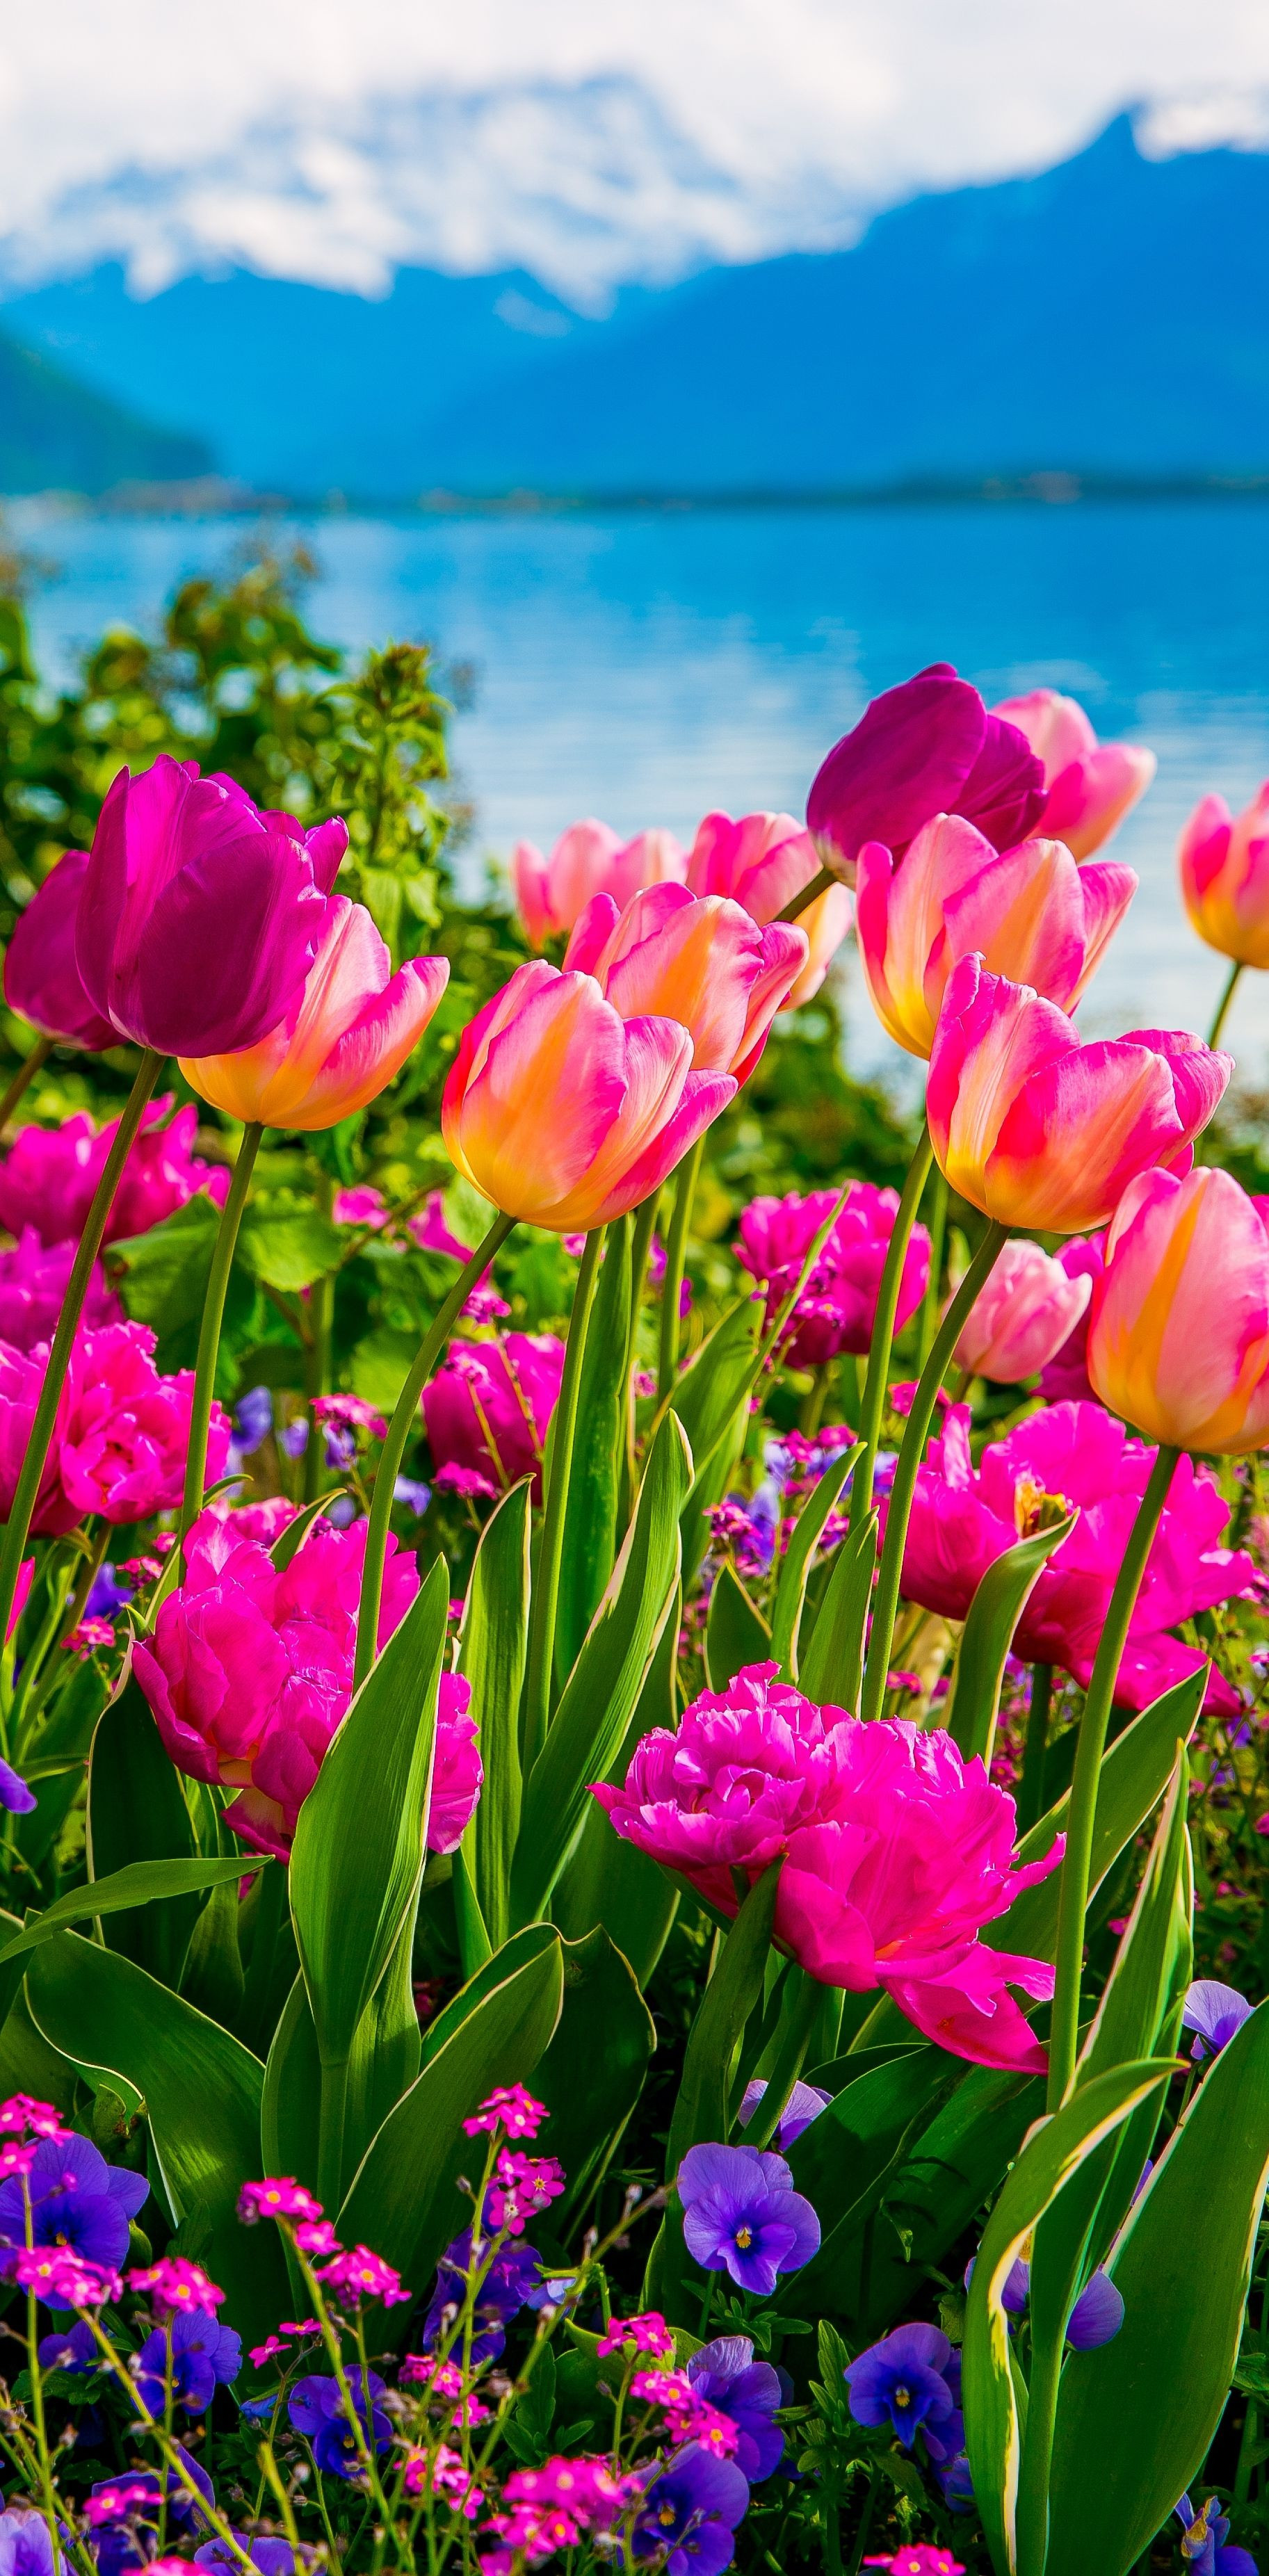 Best Flowers New York Fresh Pink and Purple Tulips Flowers On Lake Geneva with Swiss Alps